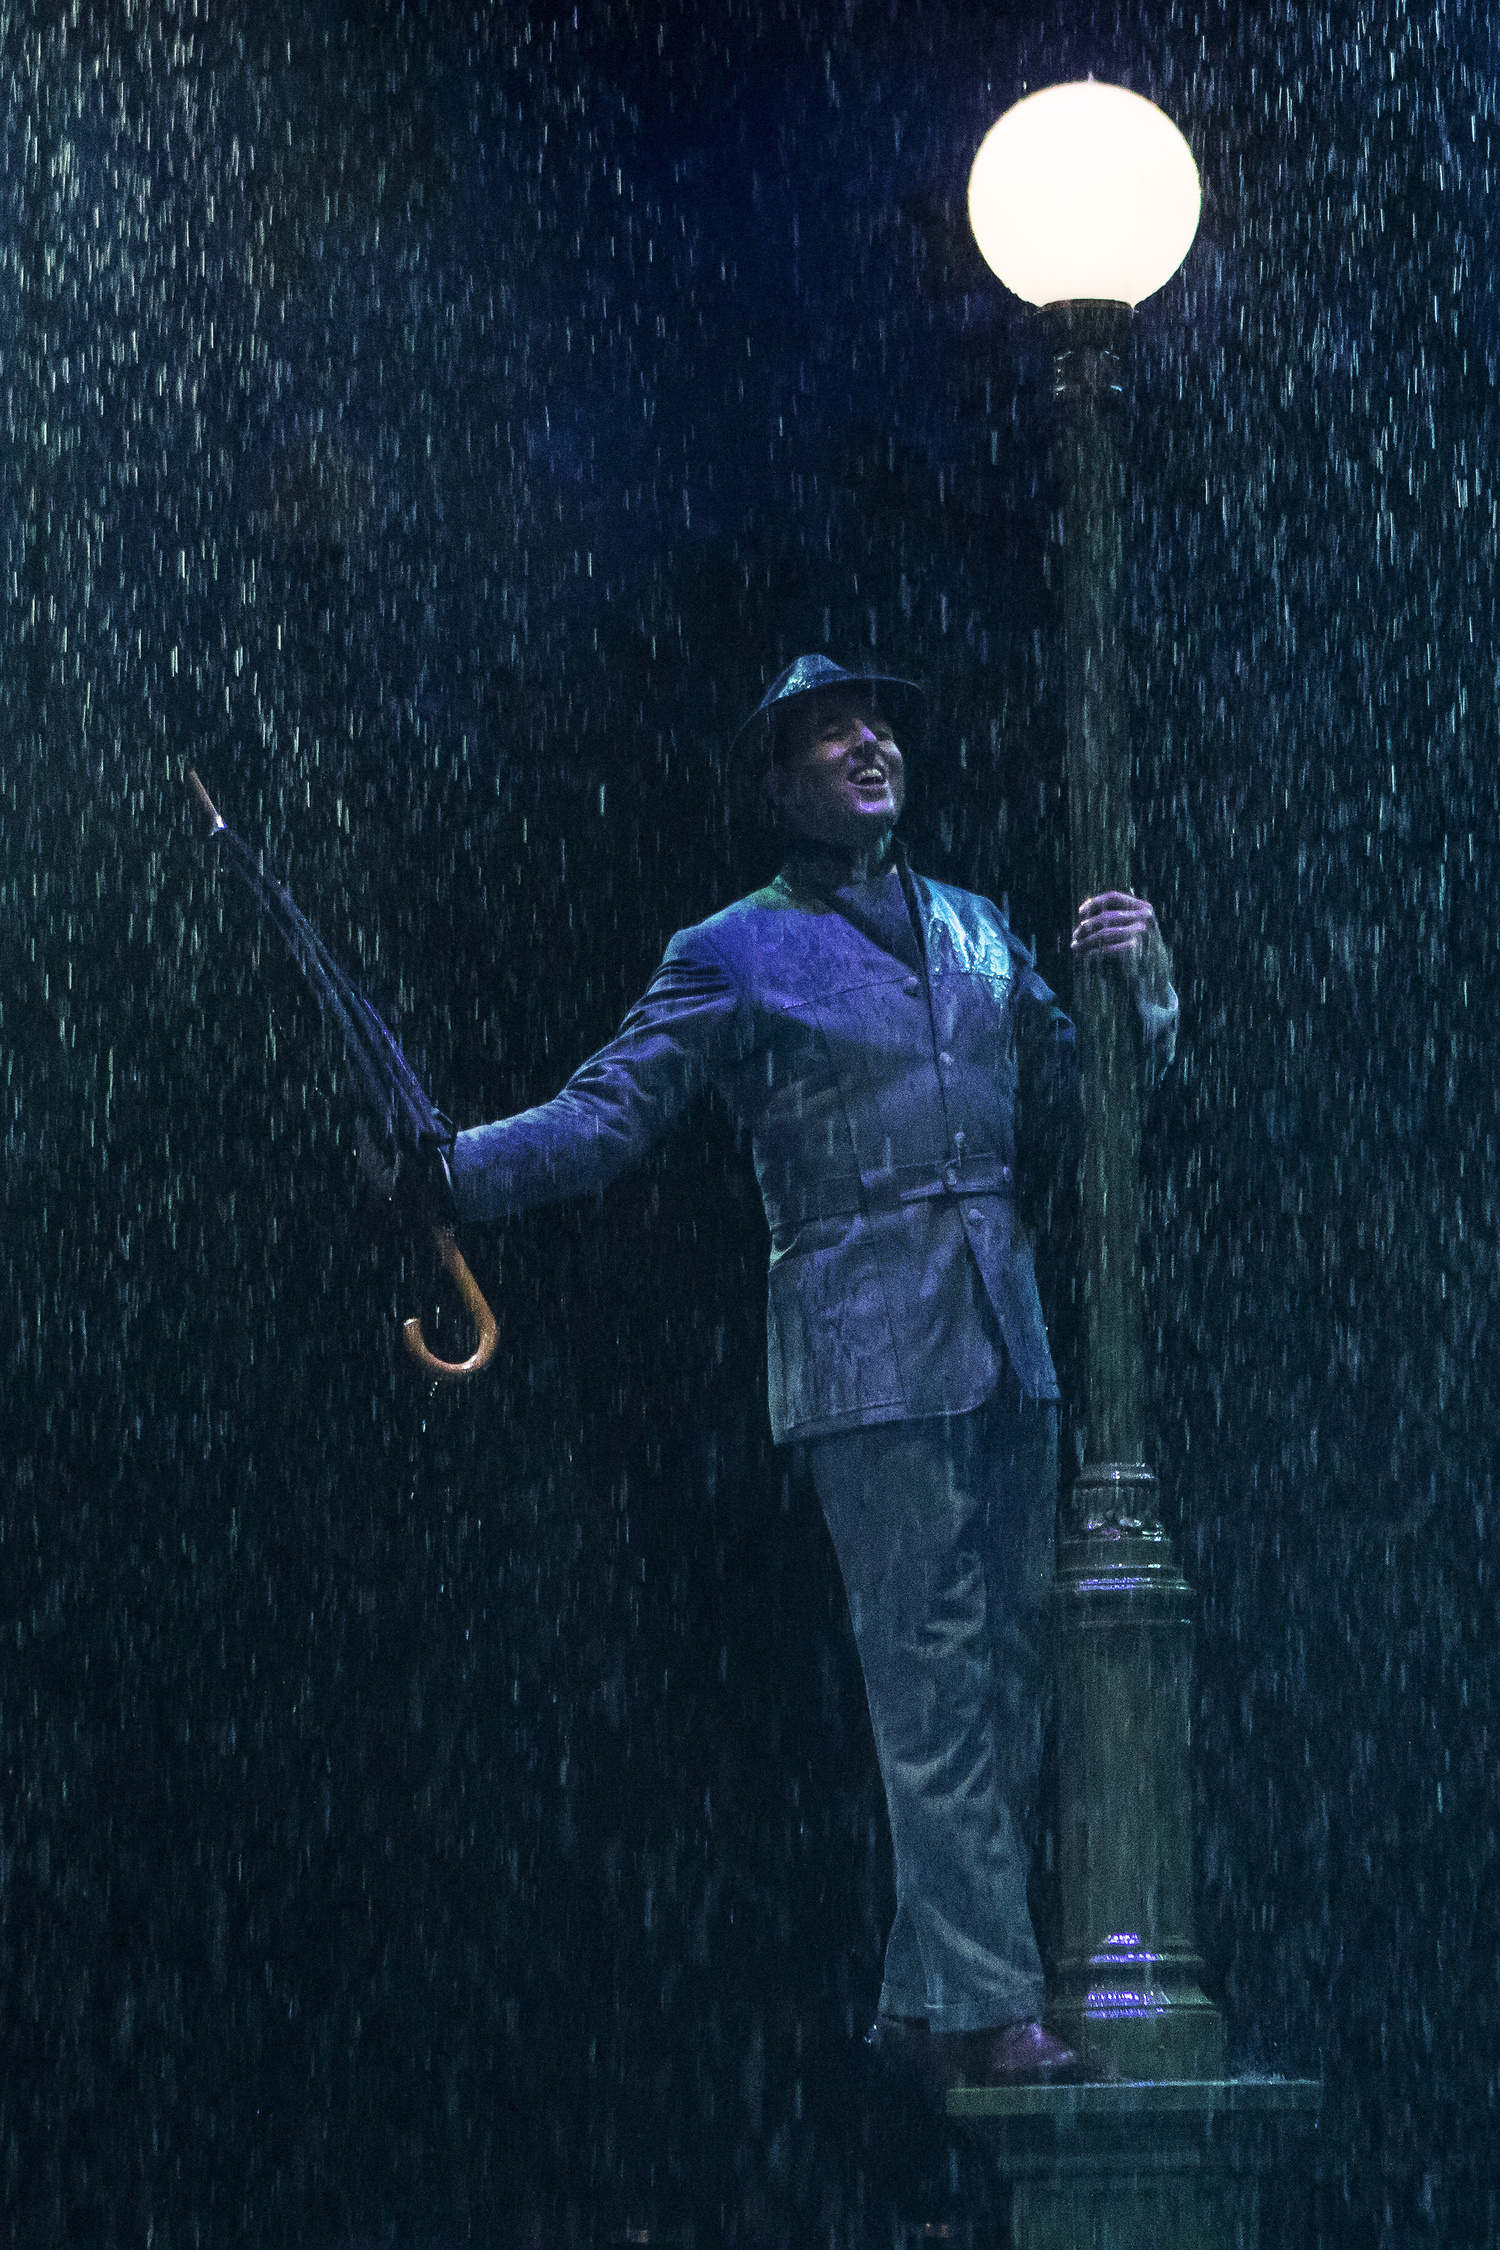 BWW Review: SINGIN' IN THE RAIN Brings that Glorious Feeling to Broadway At Music Circus